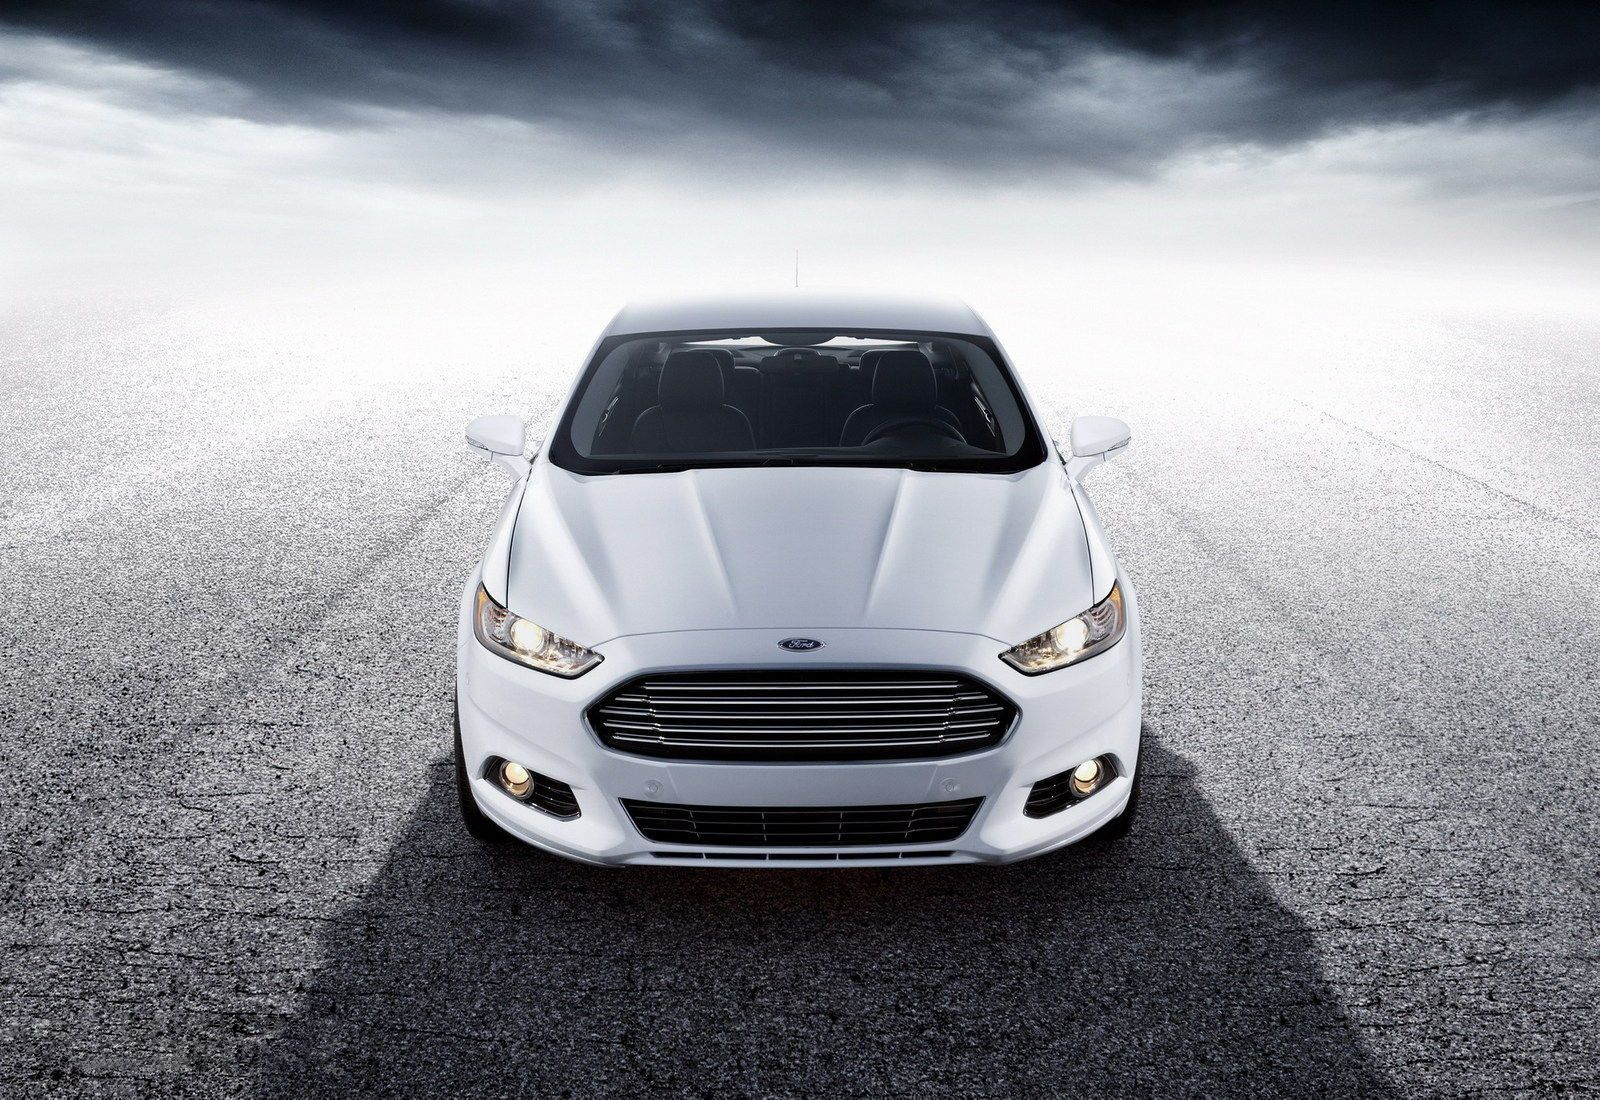 The 2013 ford fusion should bring many more buyers into ford showrooms look at that grill some aston martin influence ehh